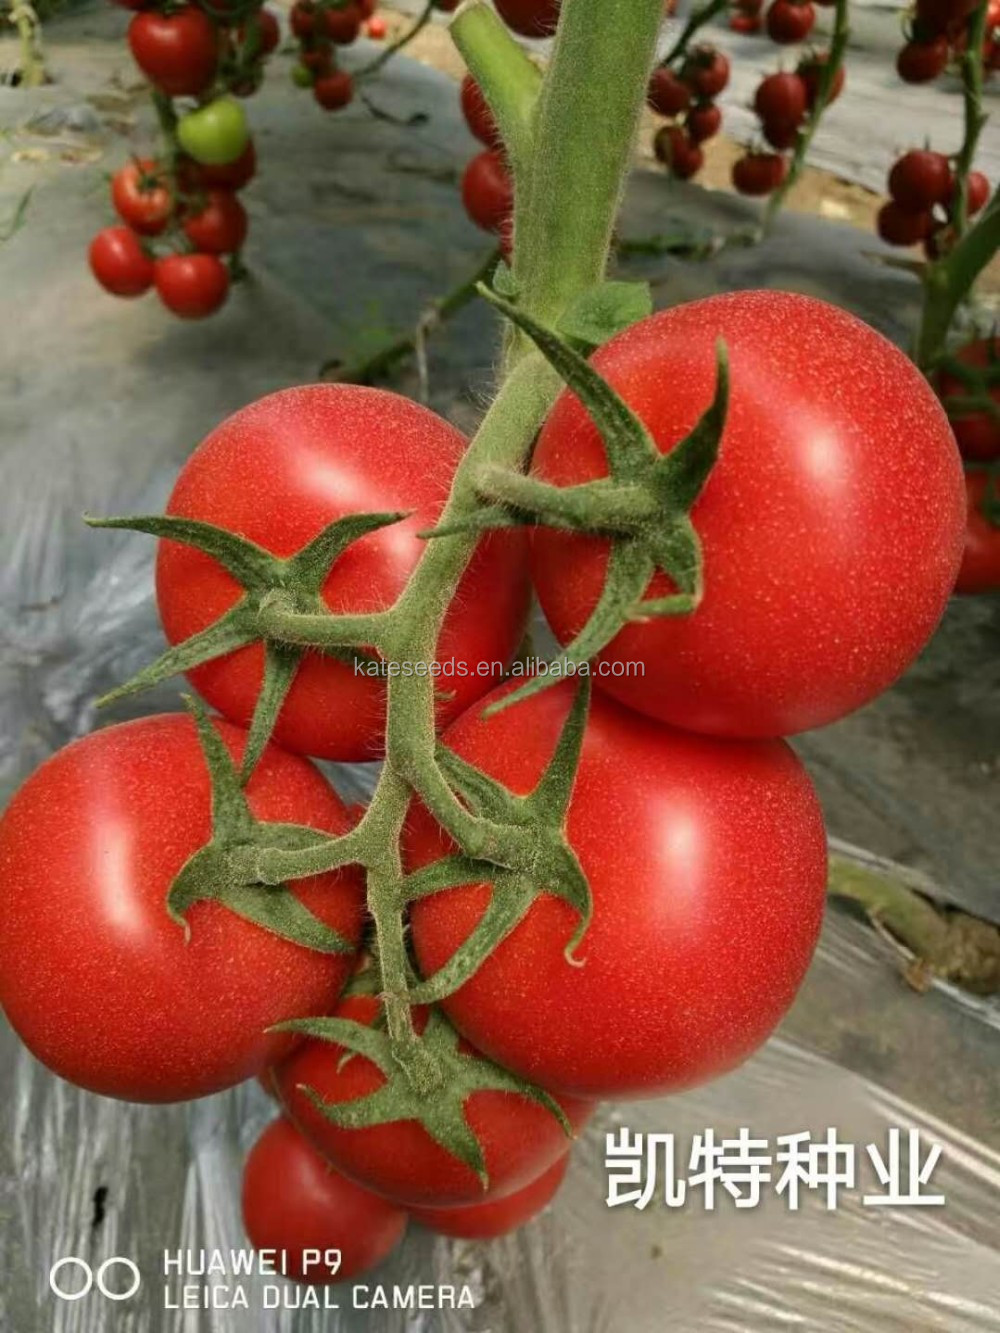 I bought tomato seeds President F1, Who planted it, how do you like it